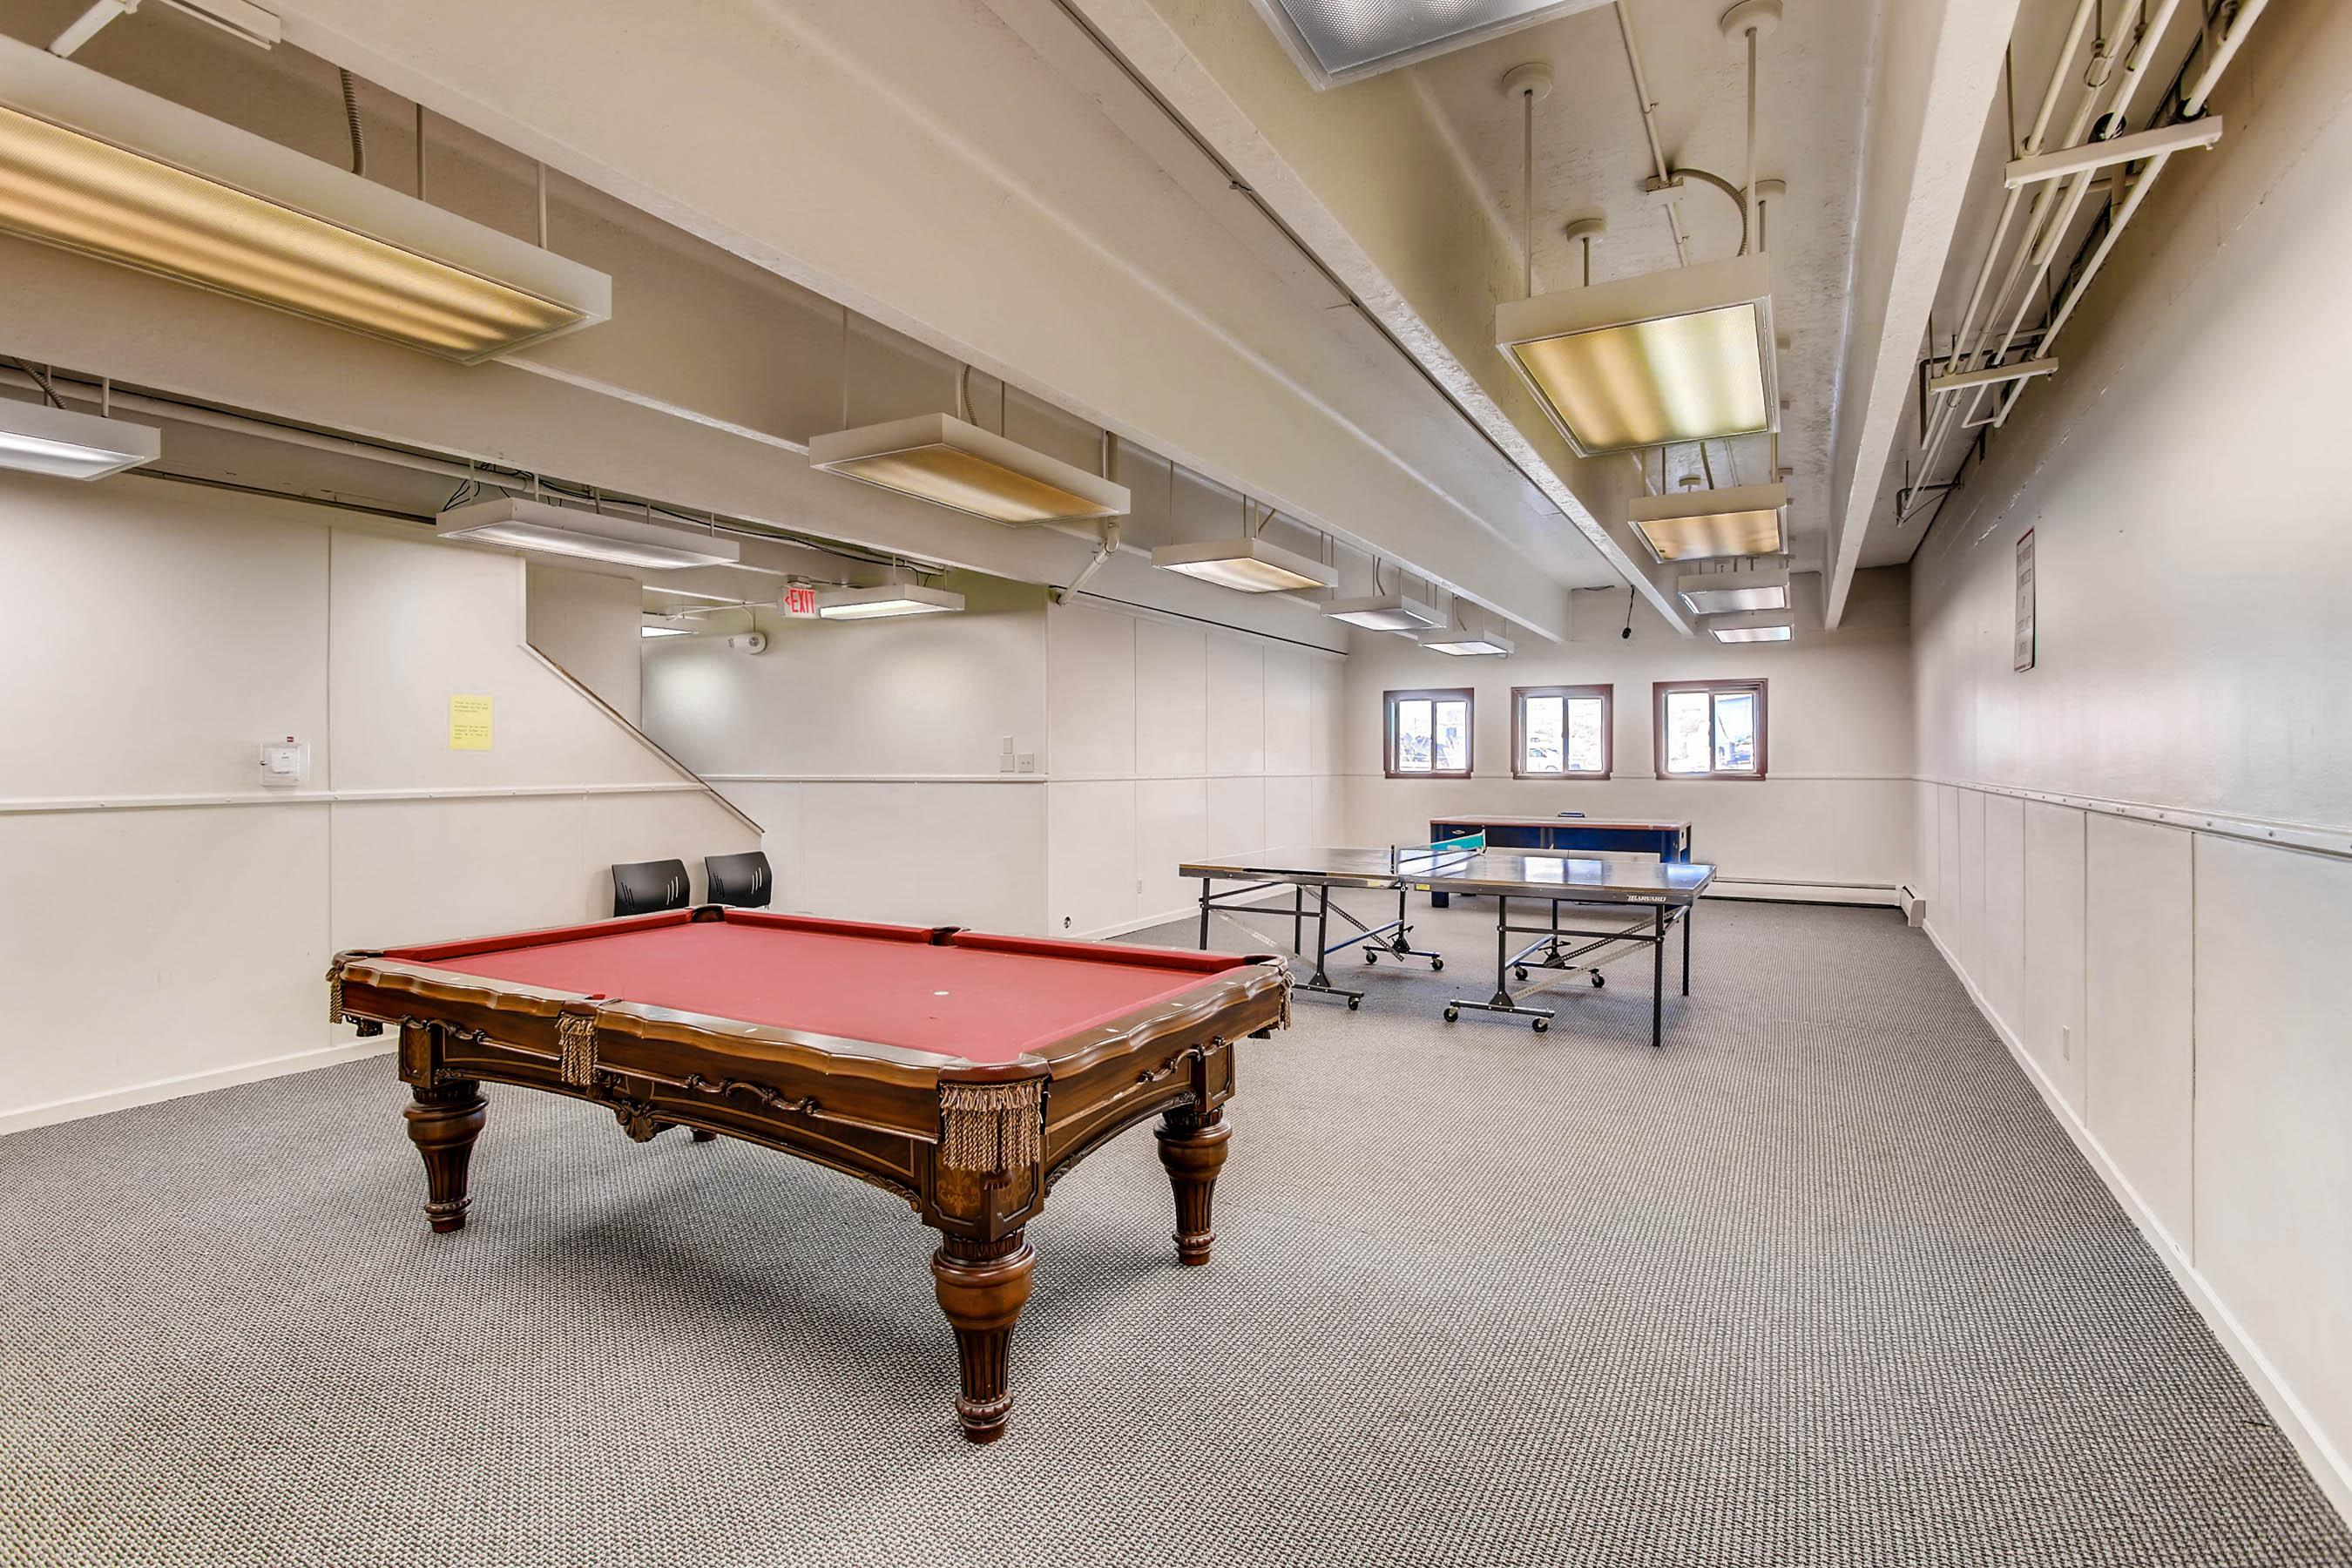 Play a round of pool, ping pong, or air hockey in the complex game room.